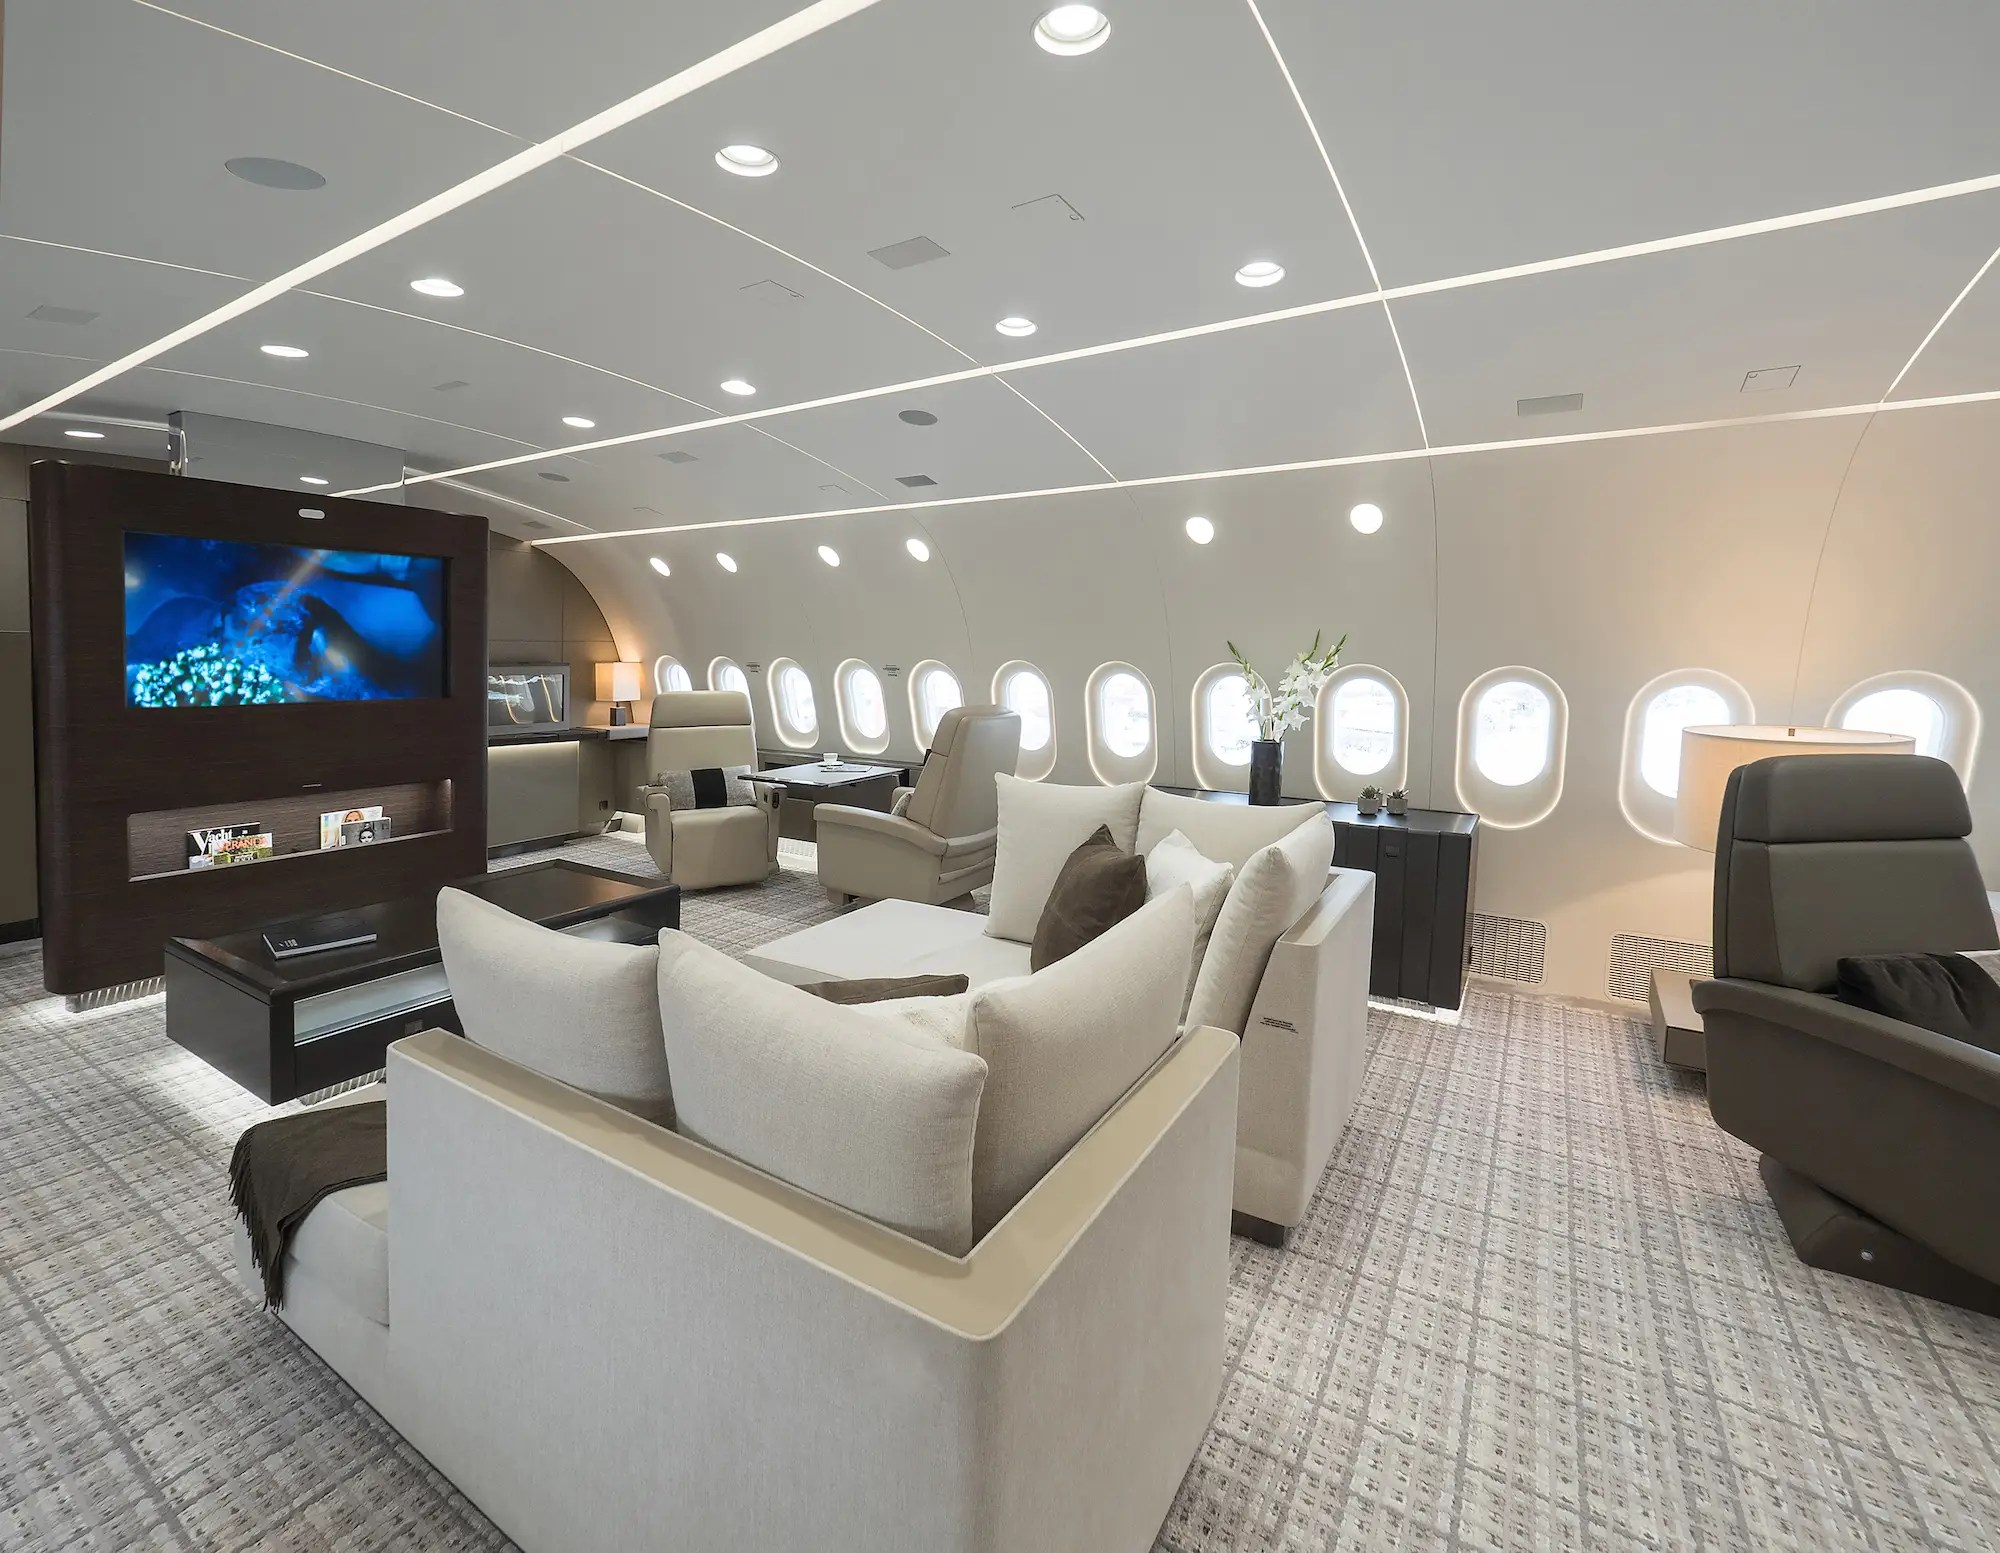 Looking towards the front of the plane, the lounge features a pair of day beds positioned in front of a large 55-inch flatscreen display. On each side of the center screen, there are individual seats each equipped with a 24-inch screen.